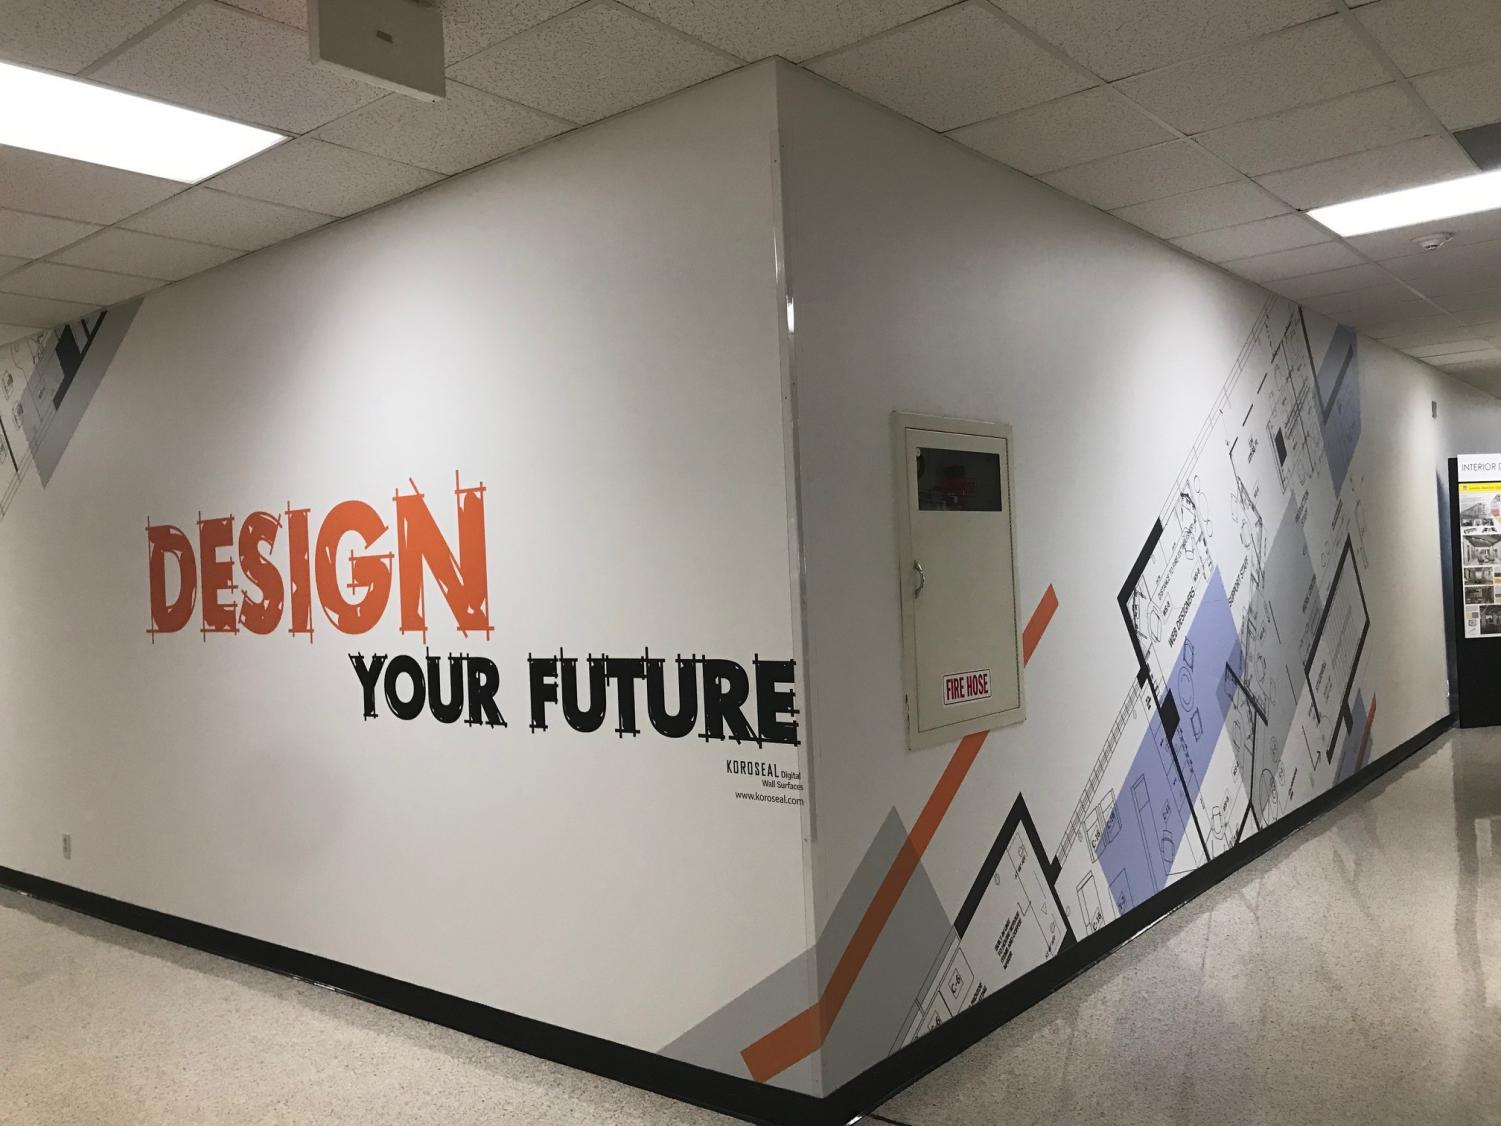 Houston Community College students can work toward a bachelor's degree in interior design at Stephen F. Austin State University while attending HCC.